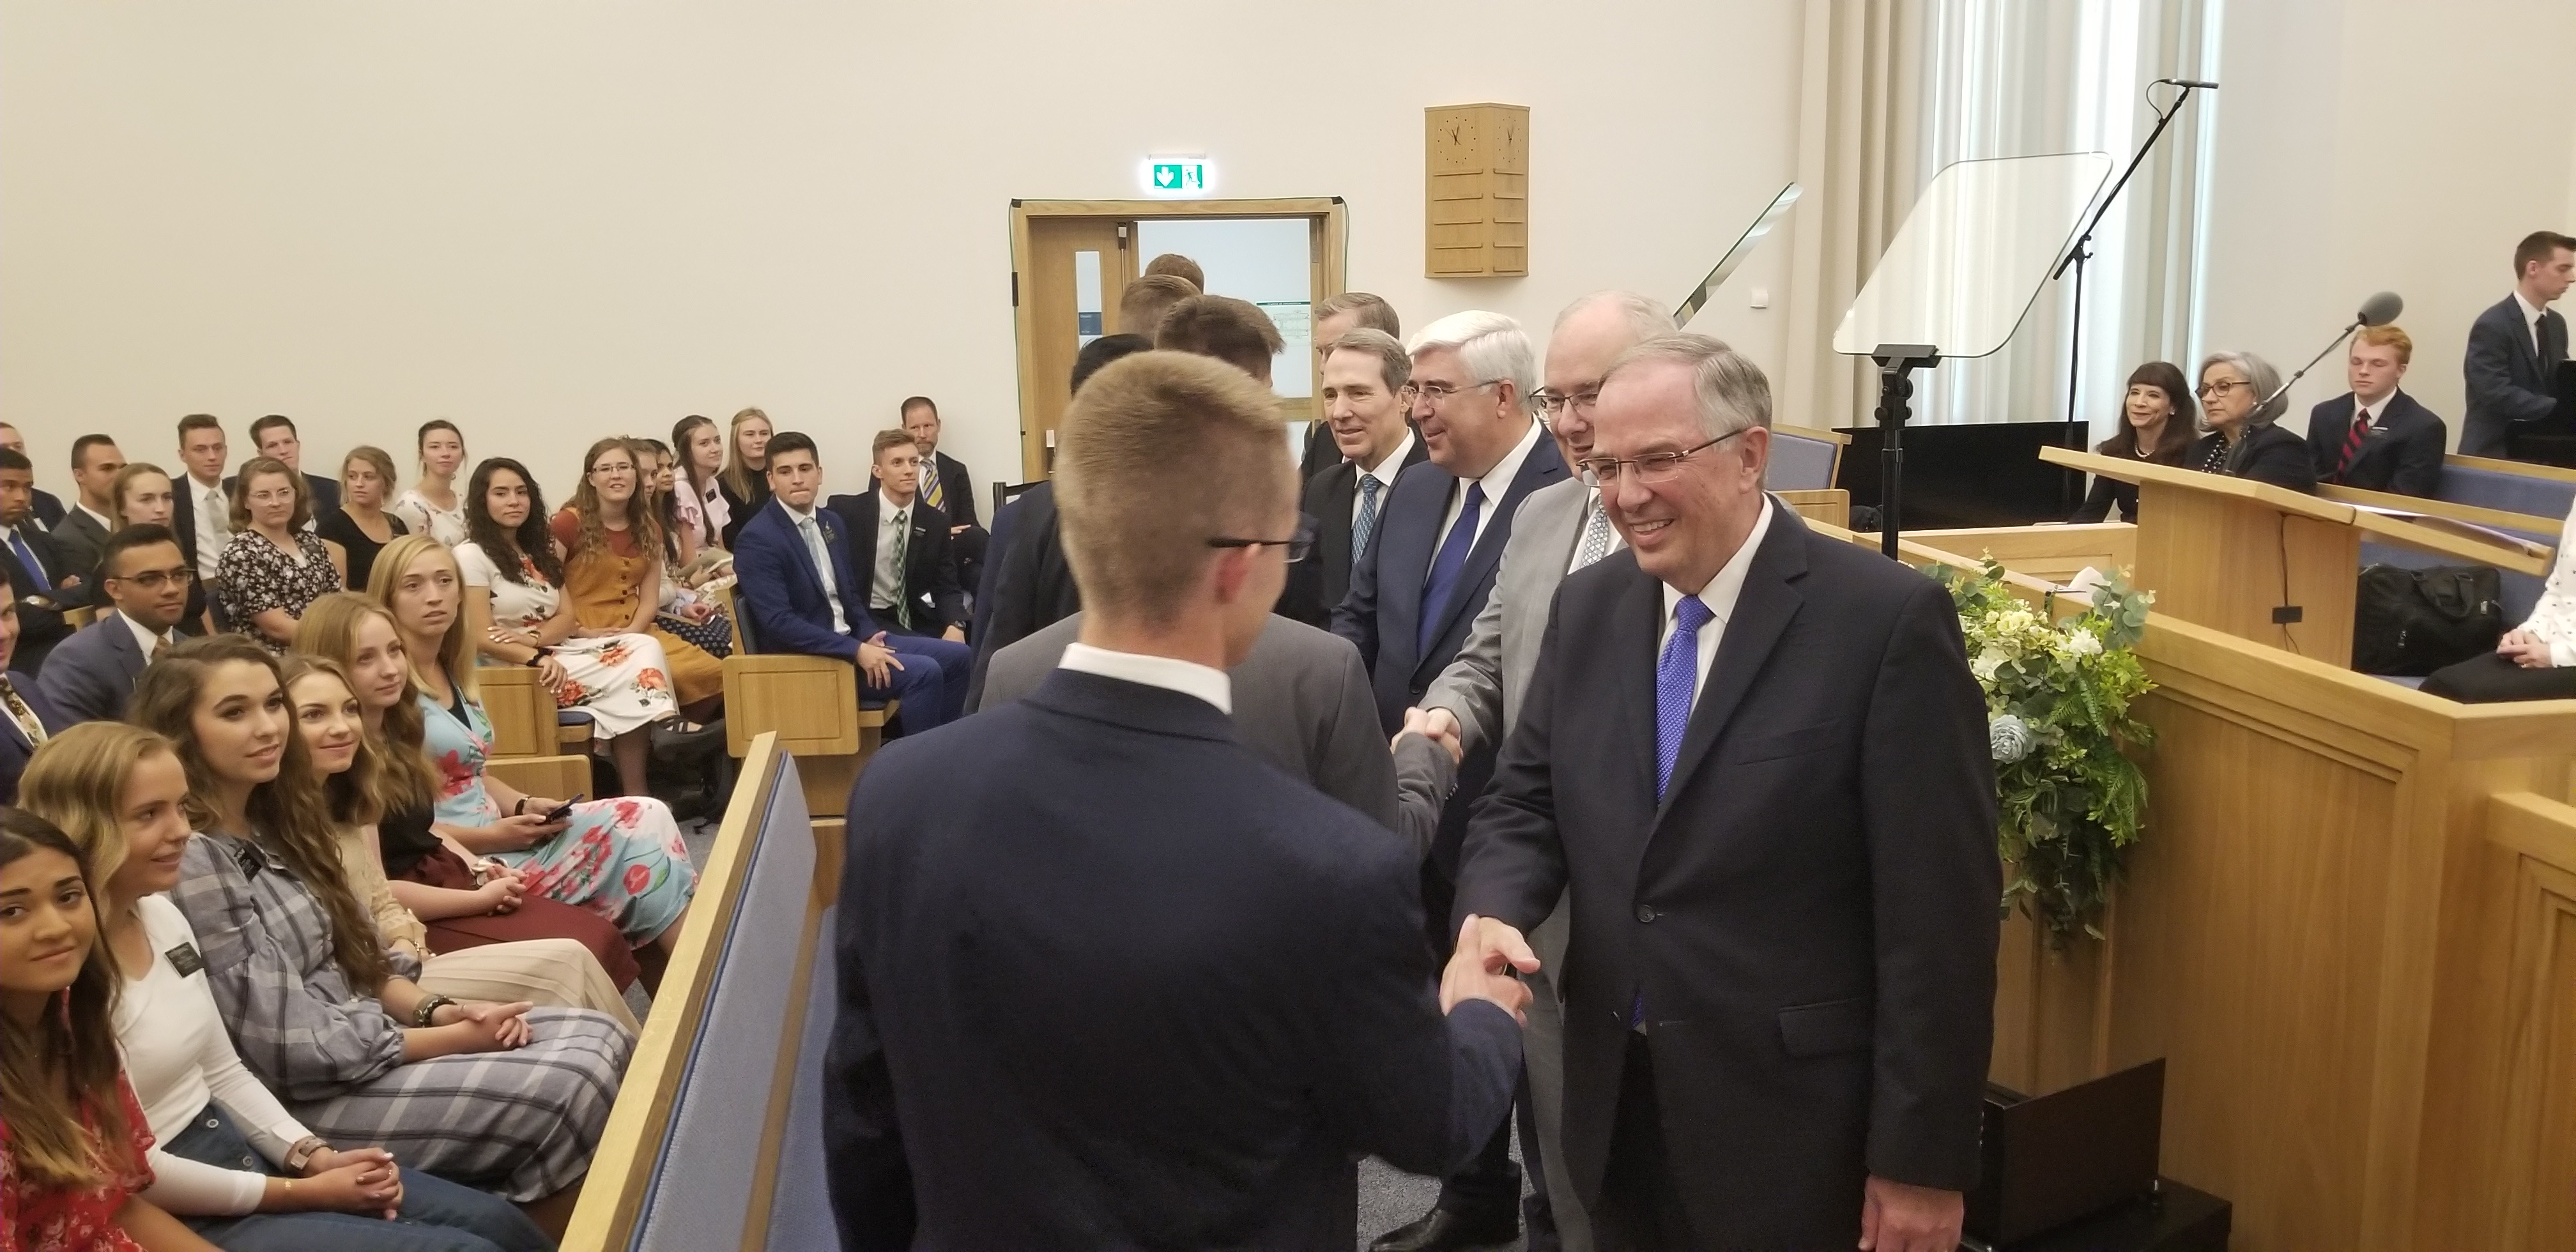 Elder Neil L. Andersen of the Quorum of the Twelve, right, greets Portugal Lisbon Mission missionaries with President Brent Fillmore of the mission, Elder José A. Teixeira, Elder Gary B. Sabin and Elder Kevin R. Duncan prior to a missionary meeting Saturday, Sept. 14, 2019, in Lisbon.